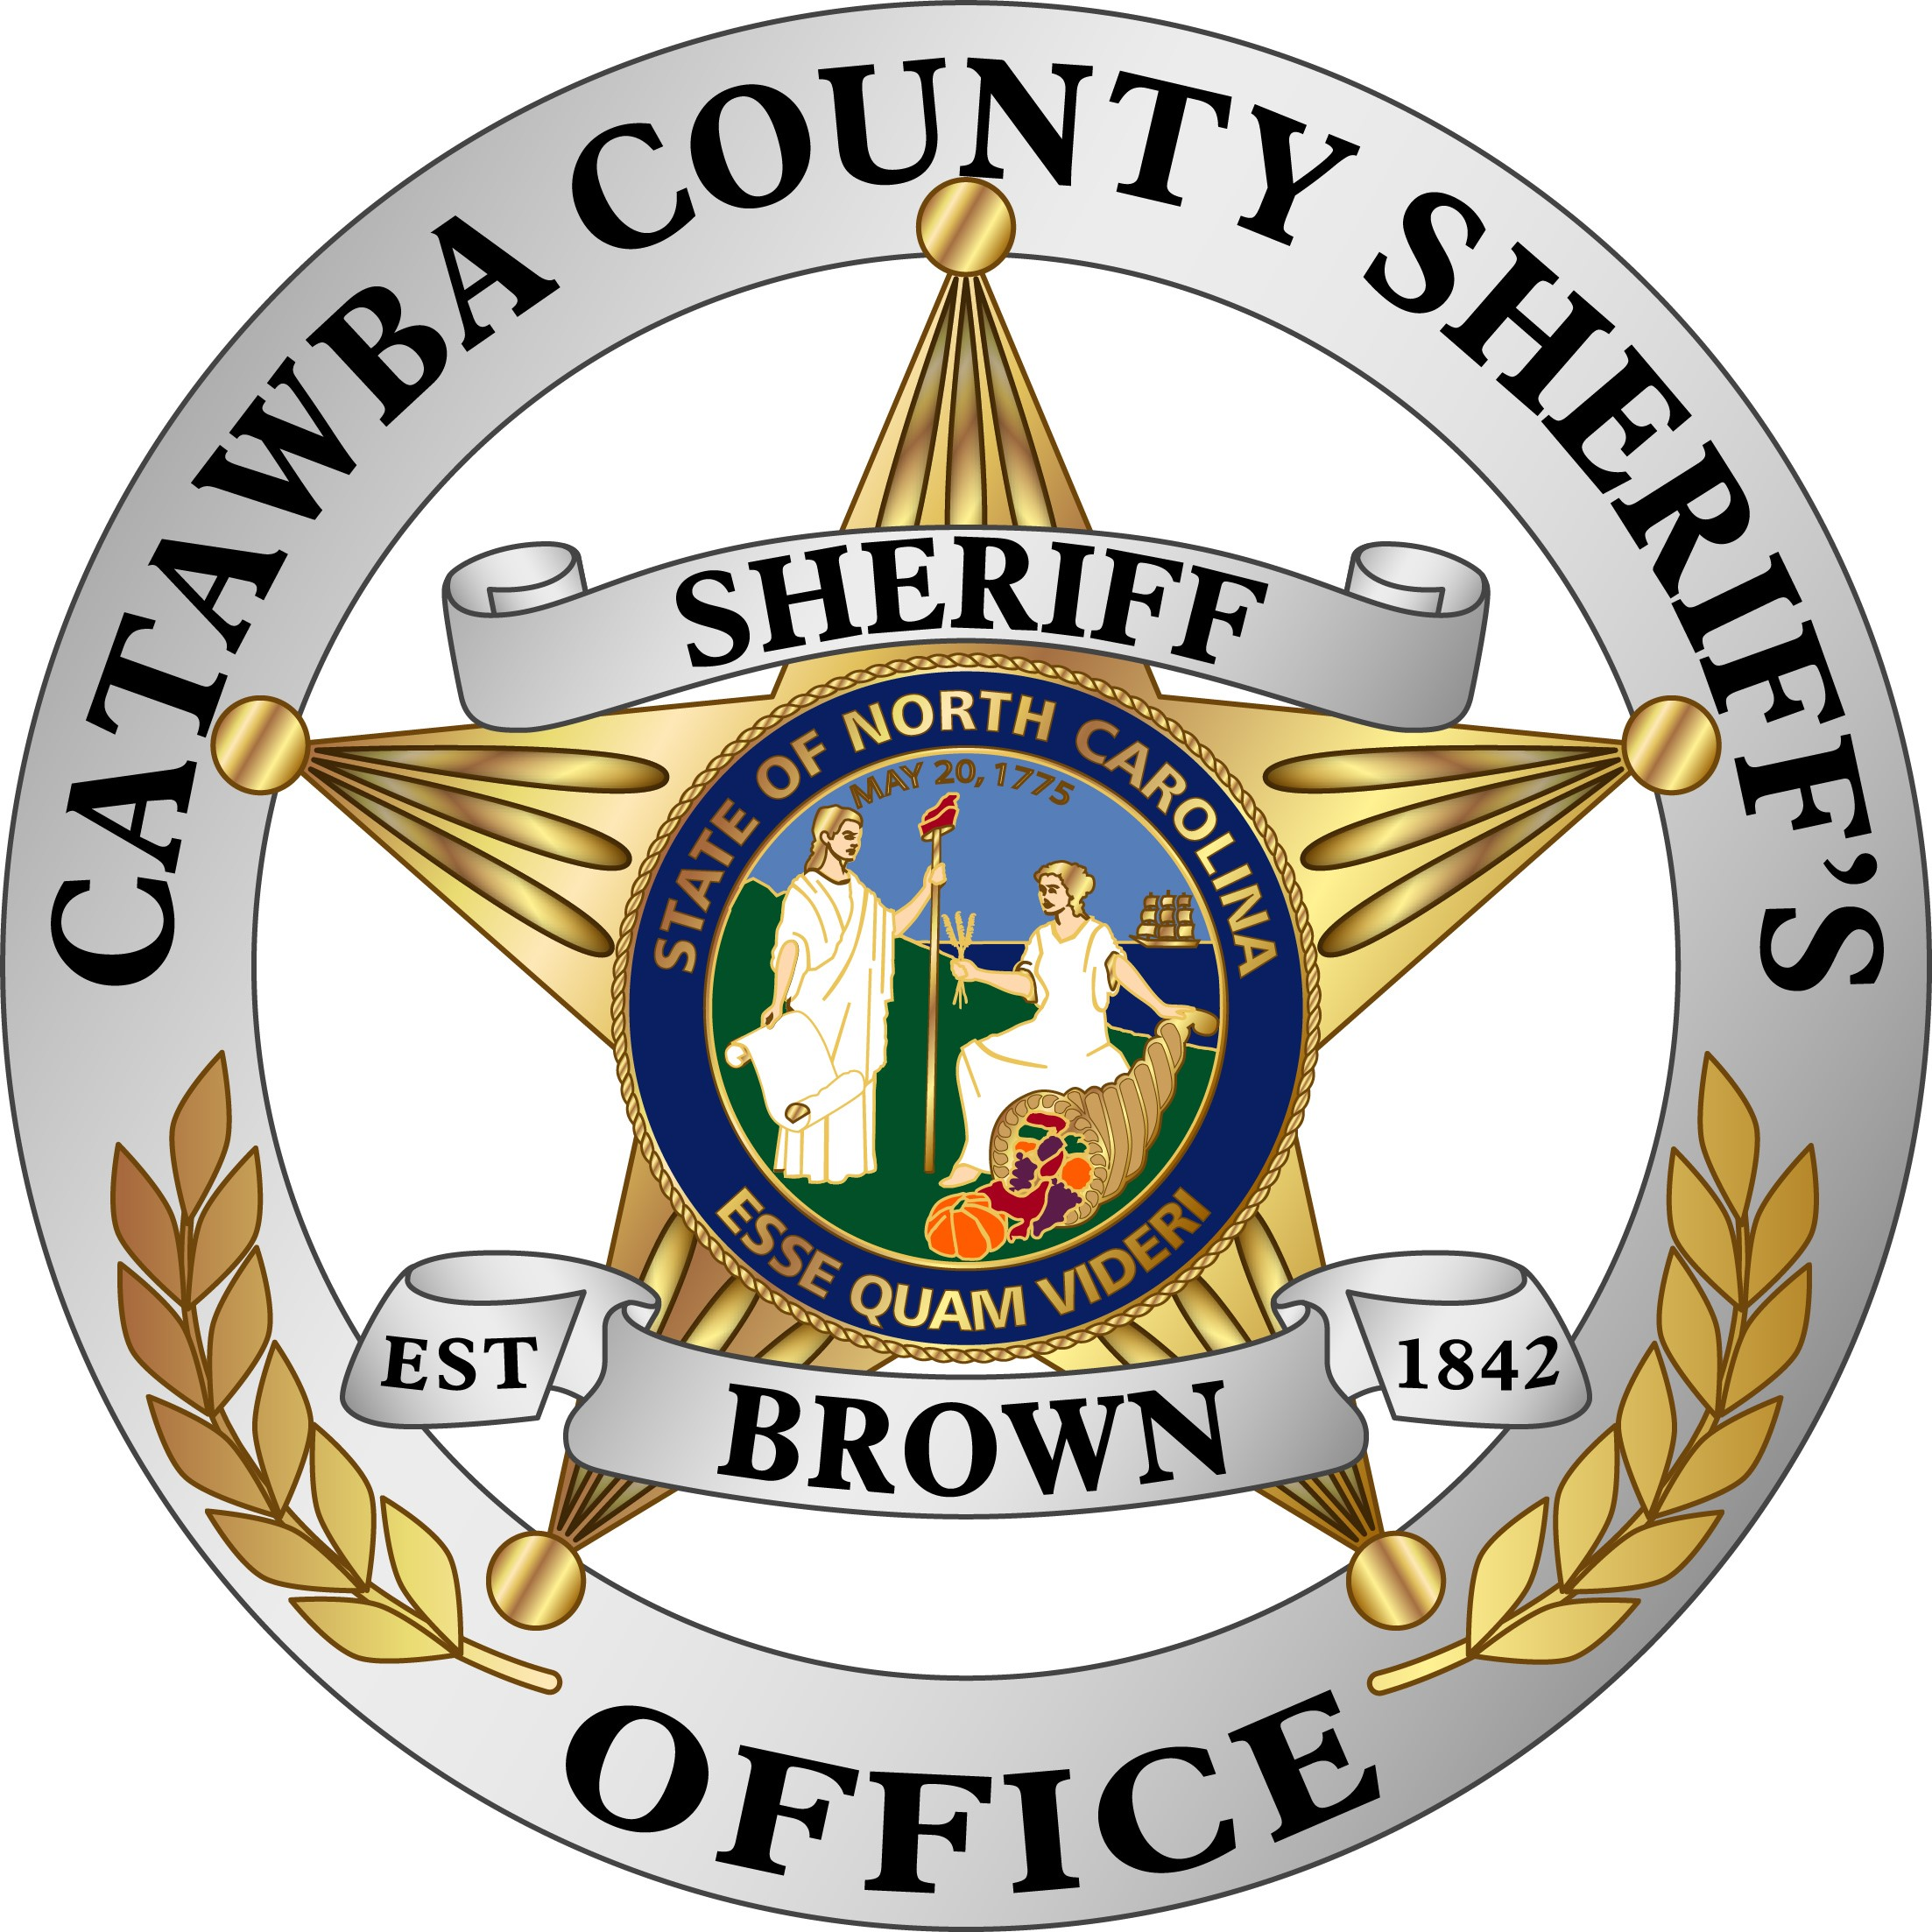 Letter to Citizens from Sheriff Don Brown